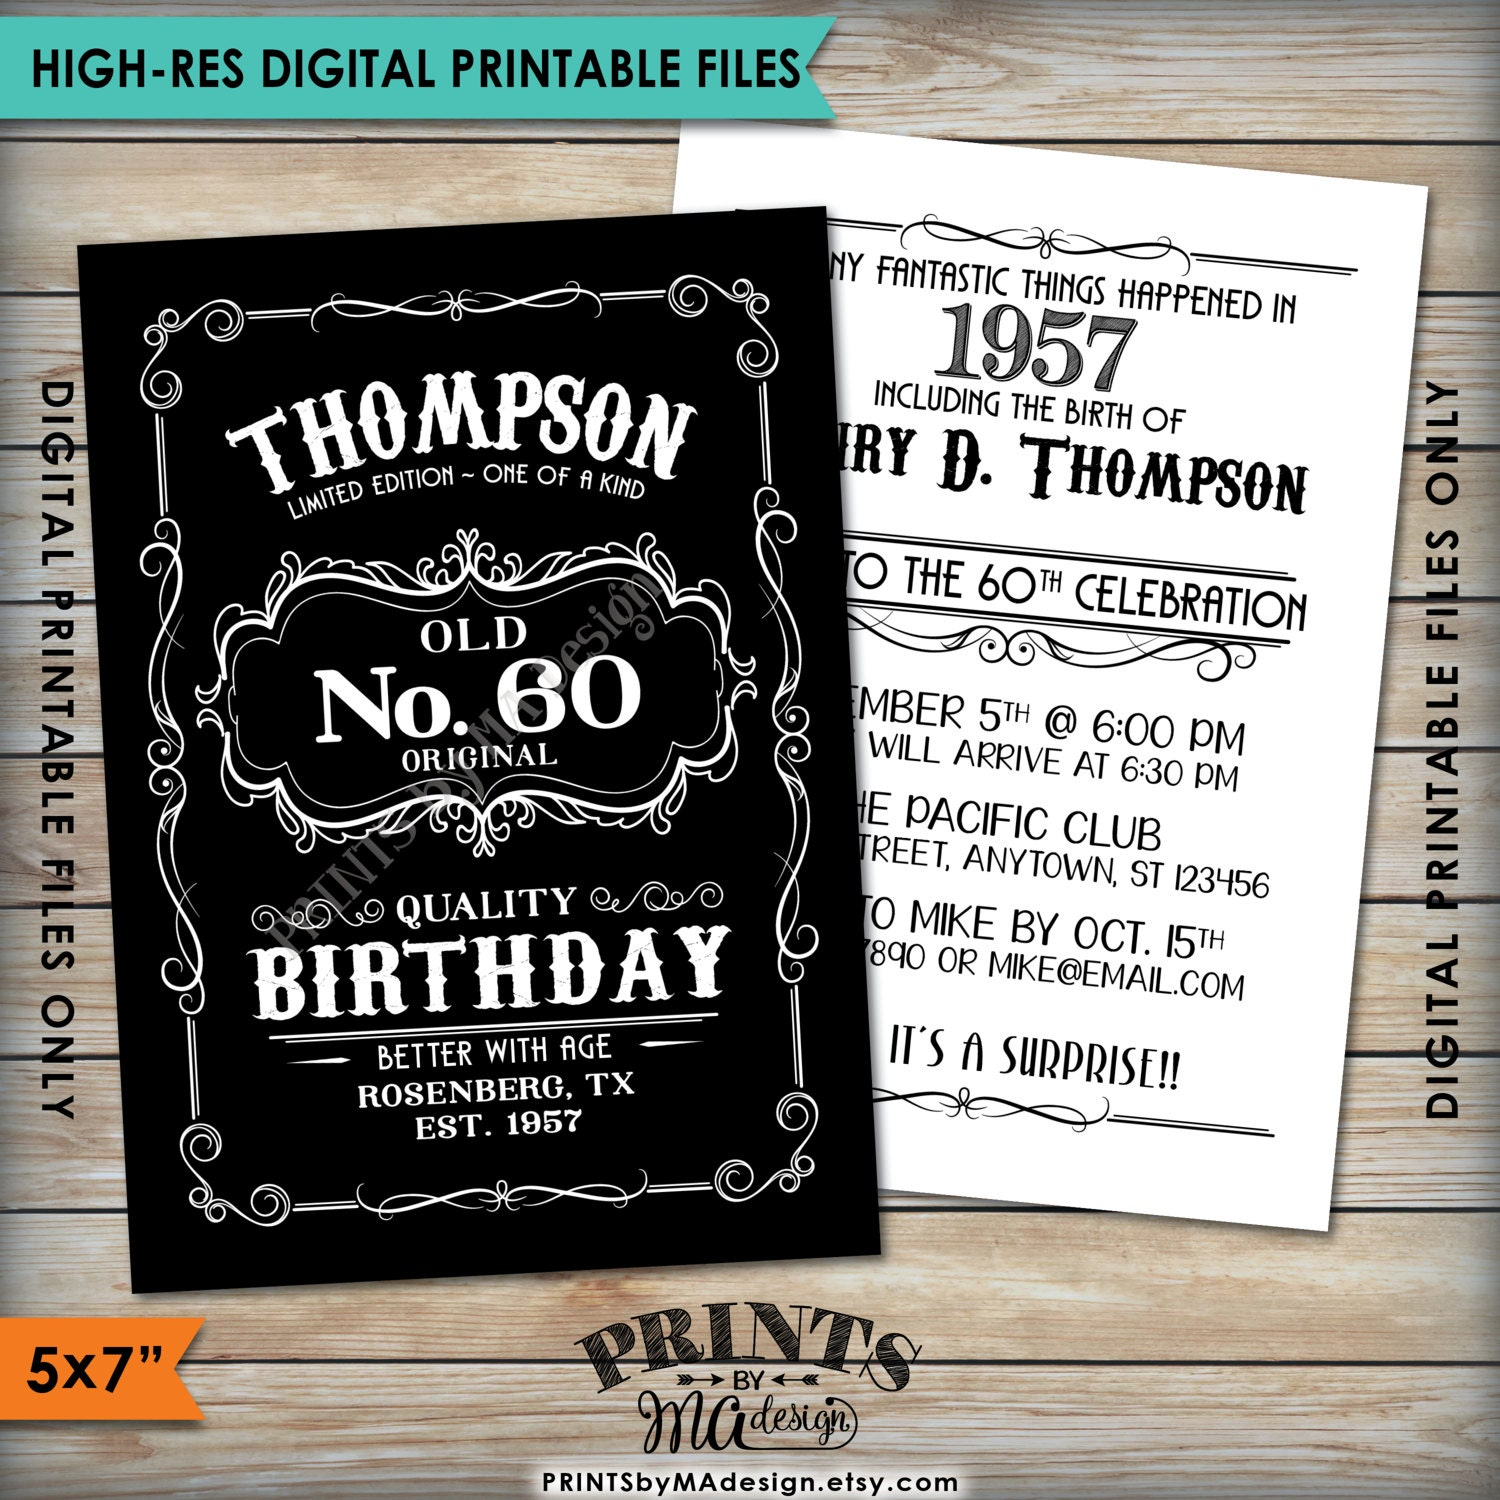 Vintage Birthday Invitation Aged To Perfection Alcohol Theme